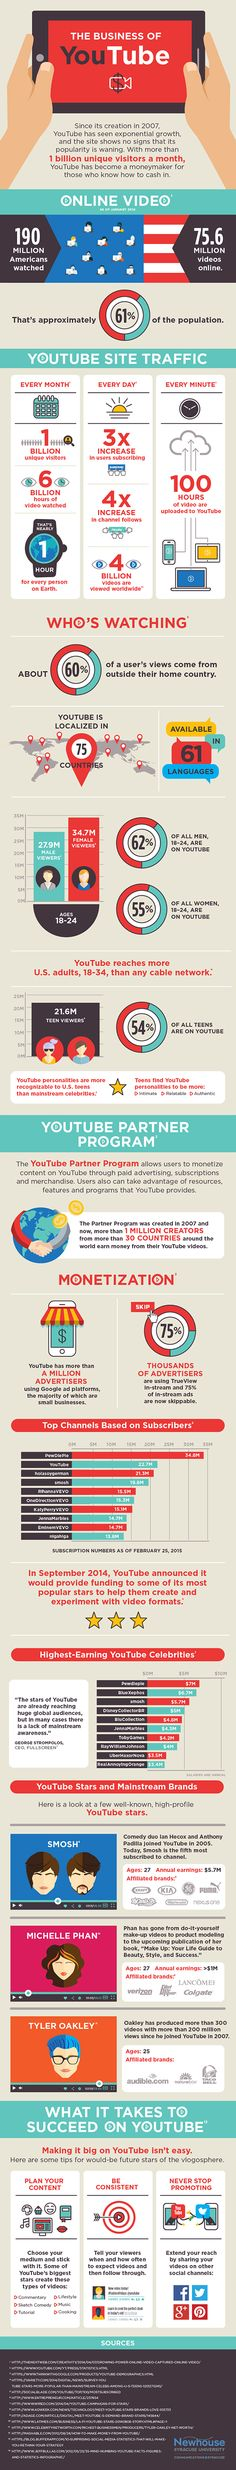 The Business of YouTube #infographic #Youtube #SocialMedia